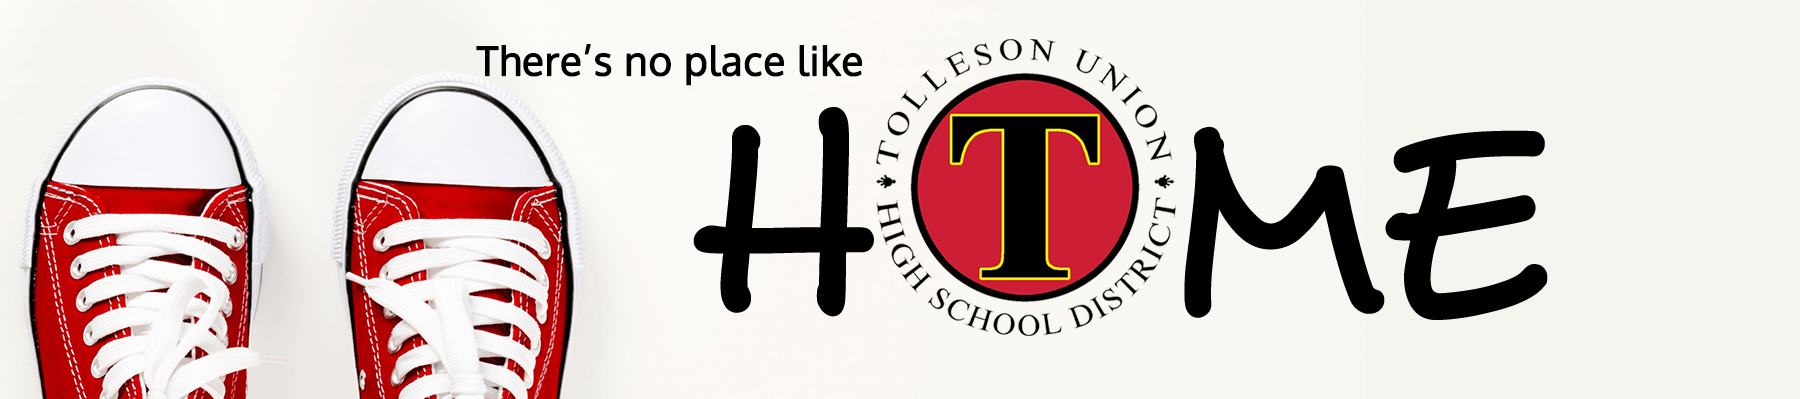 There's no place like home. Tolleson Union High School District.